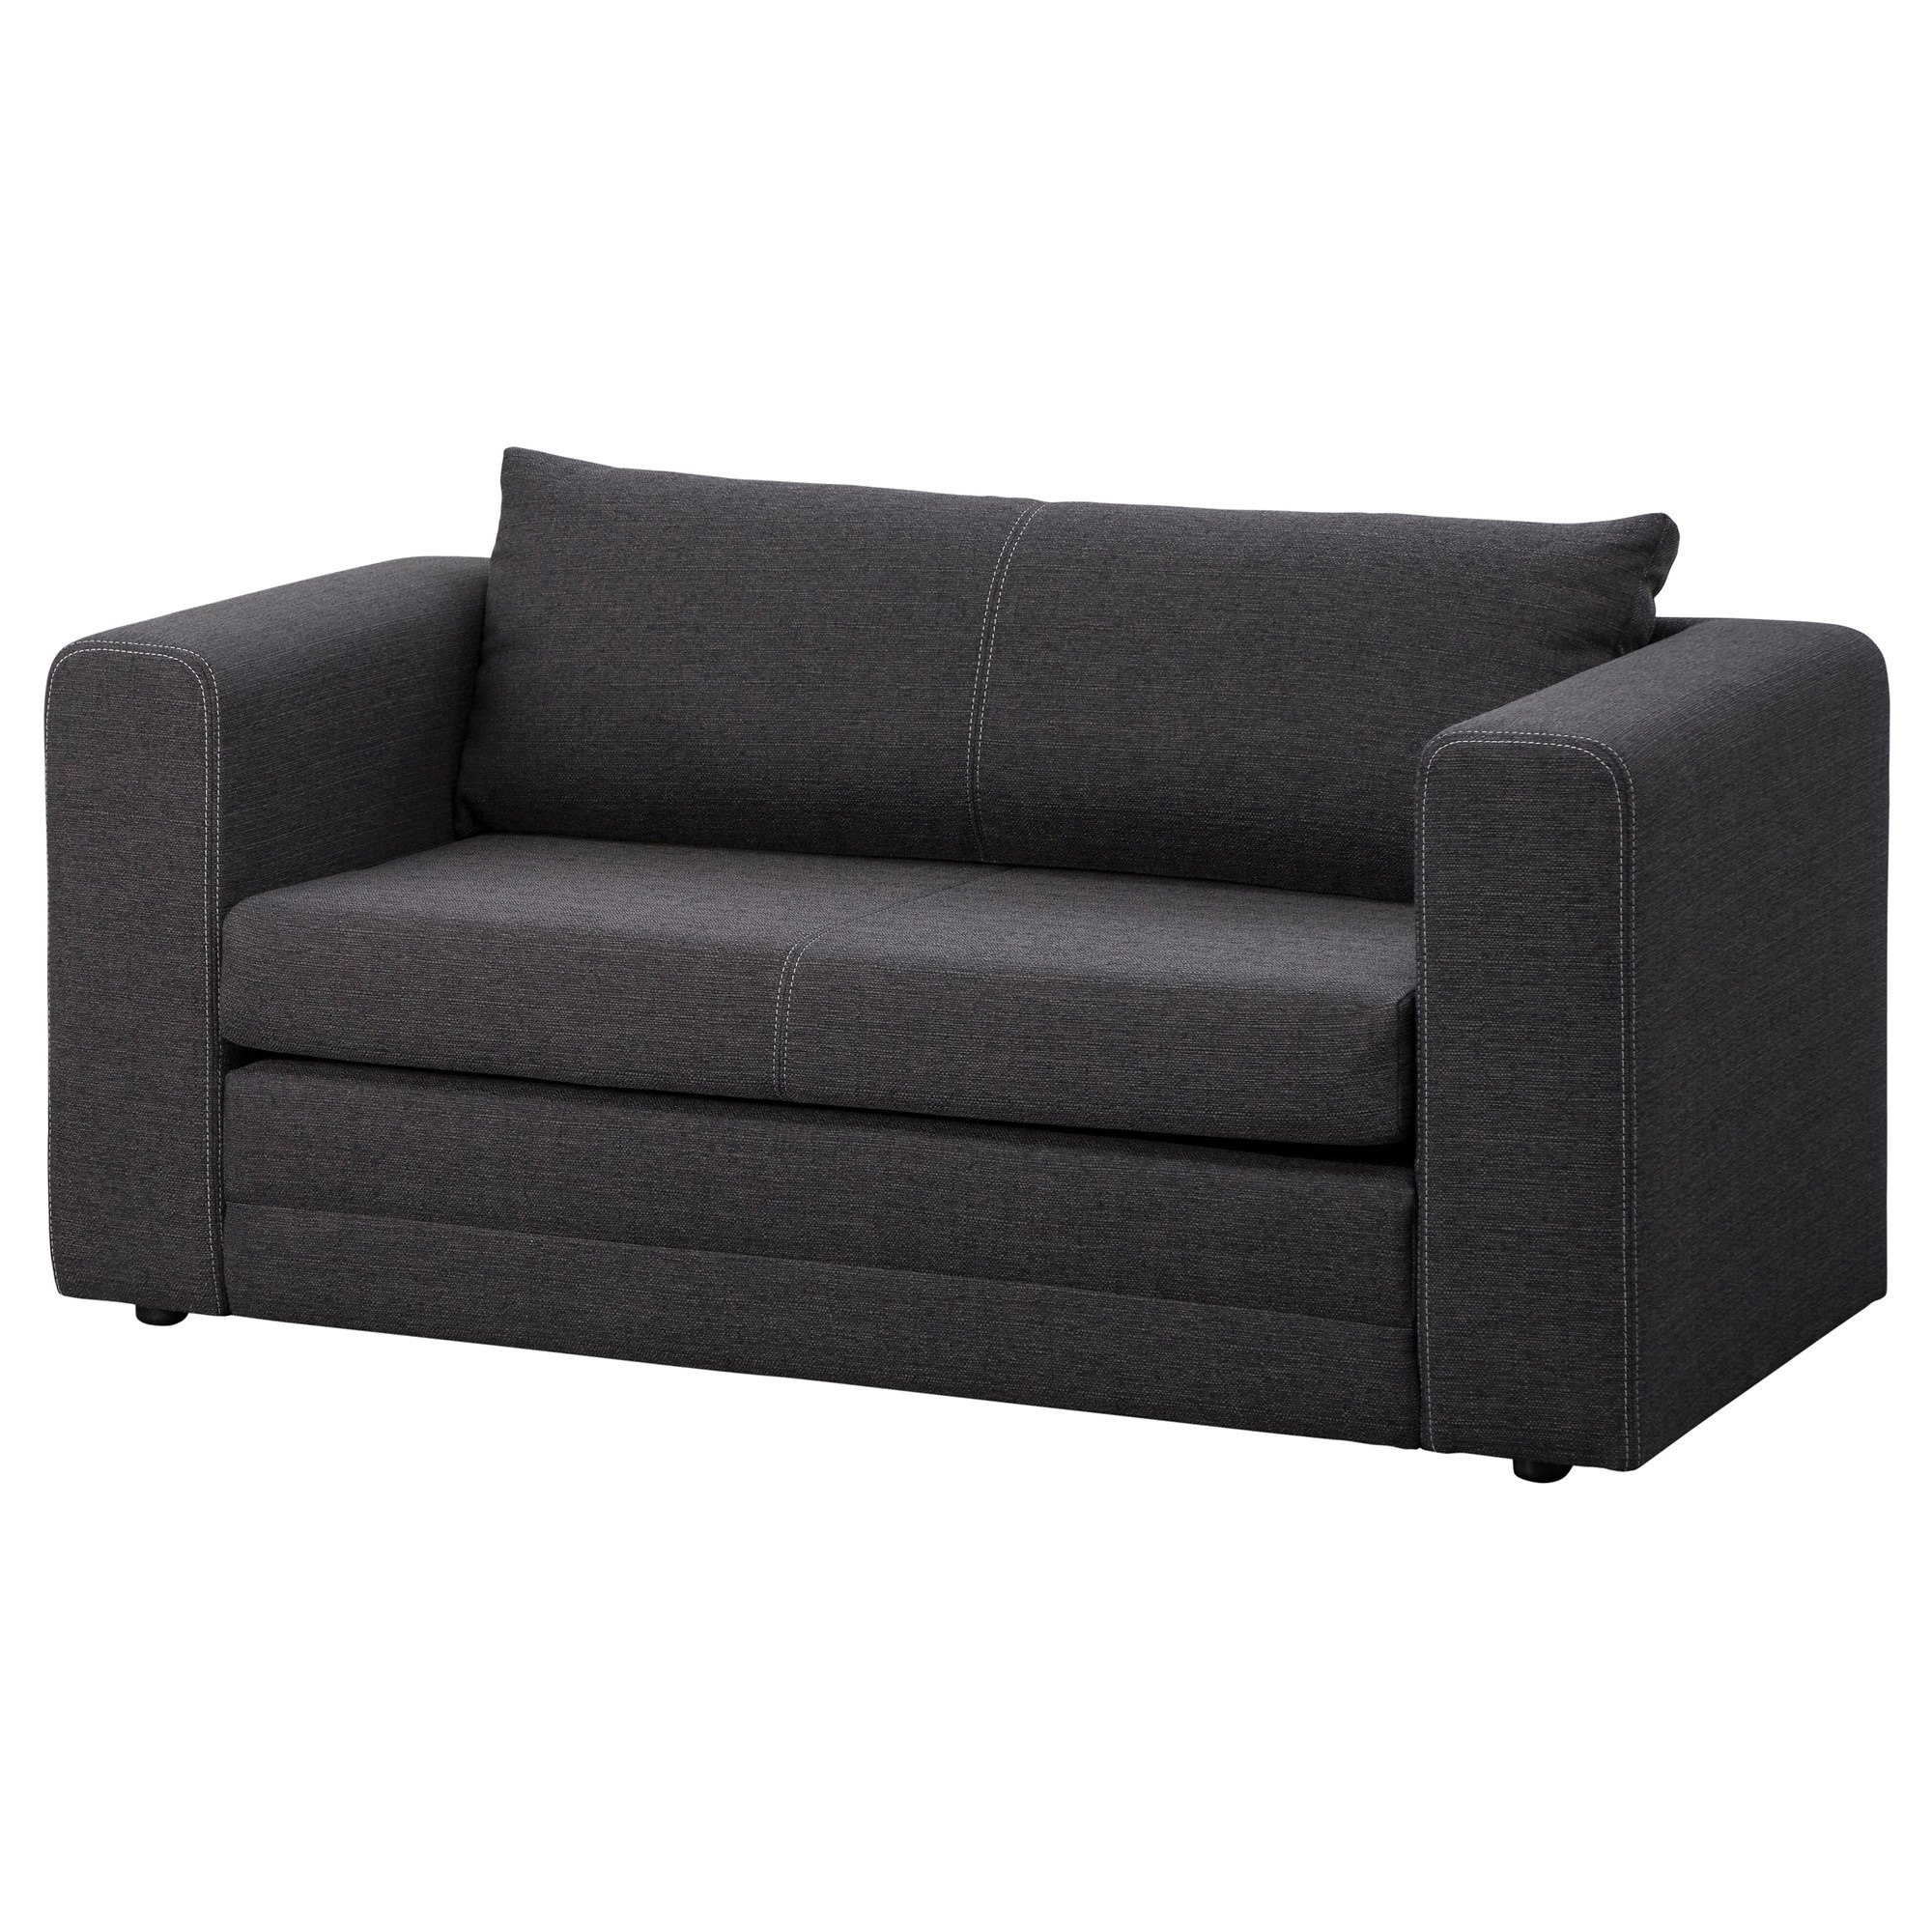 schlafsofa jugendzimmer ikea 004132 neuesten ideen f r. Black Bedroom Furniture Sets. Home Design Ideas